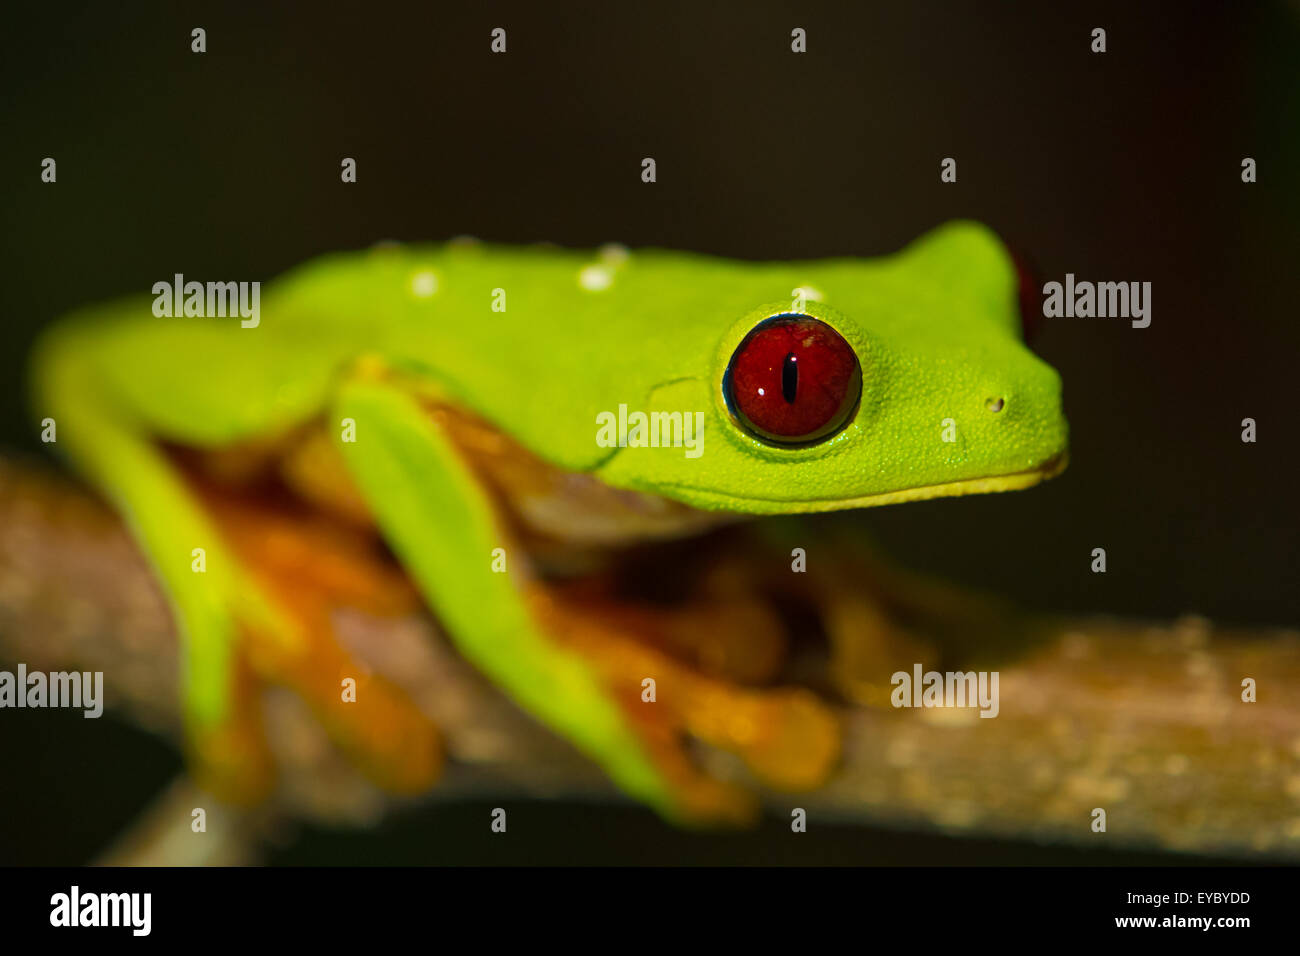 A Gaudy Leaf Frog in Costa Rica - Stock Image